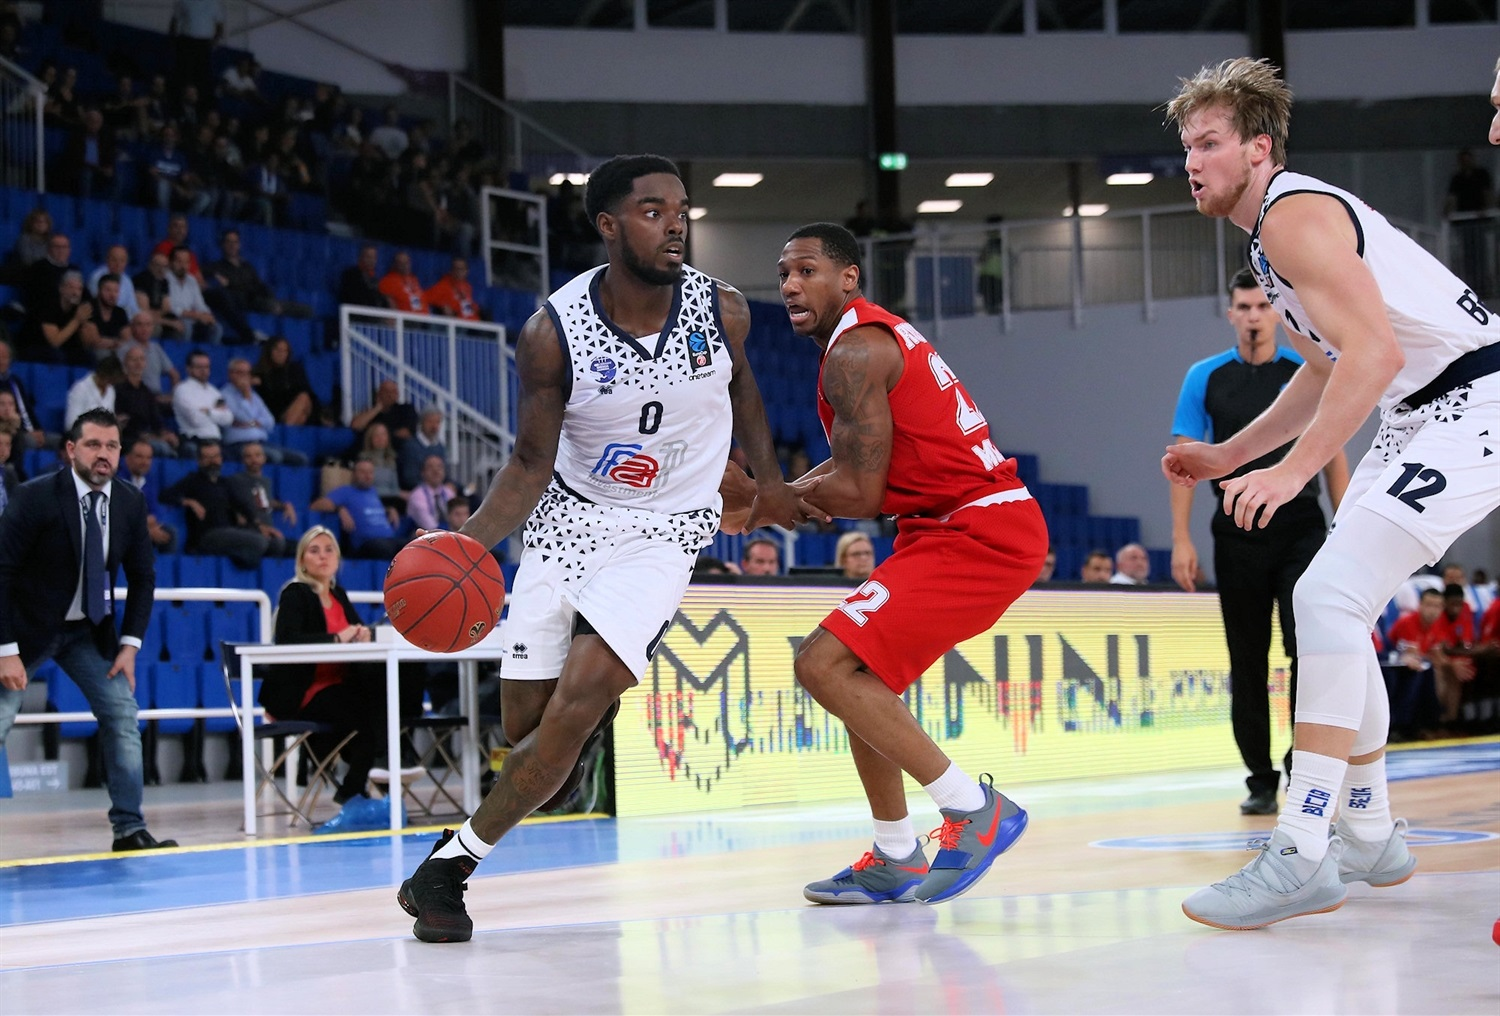 Bryon Allen - Germani Brescia Leonessa (photo Brescia) - EC18